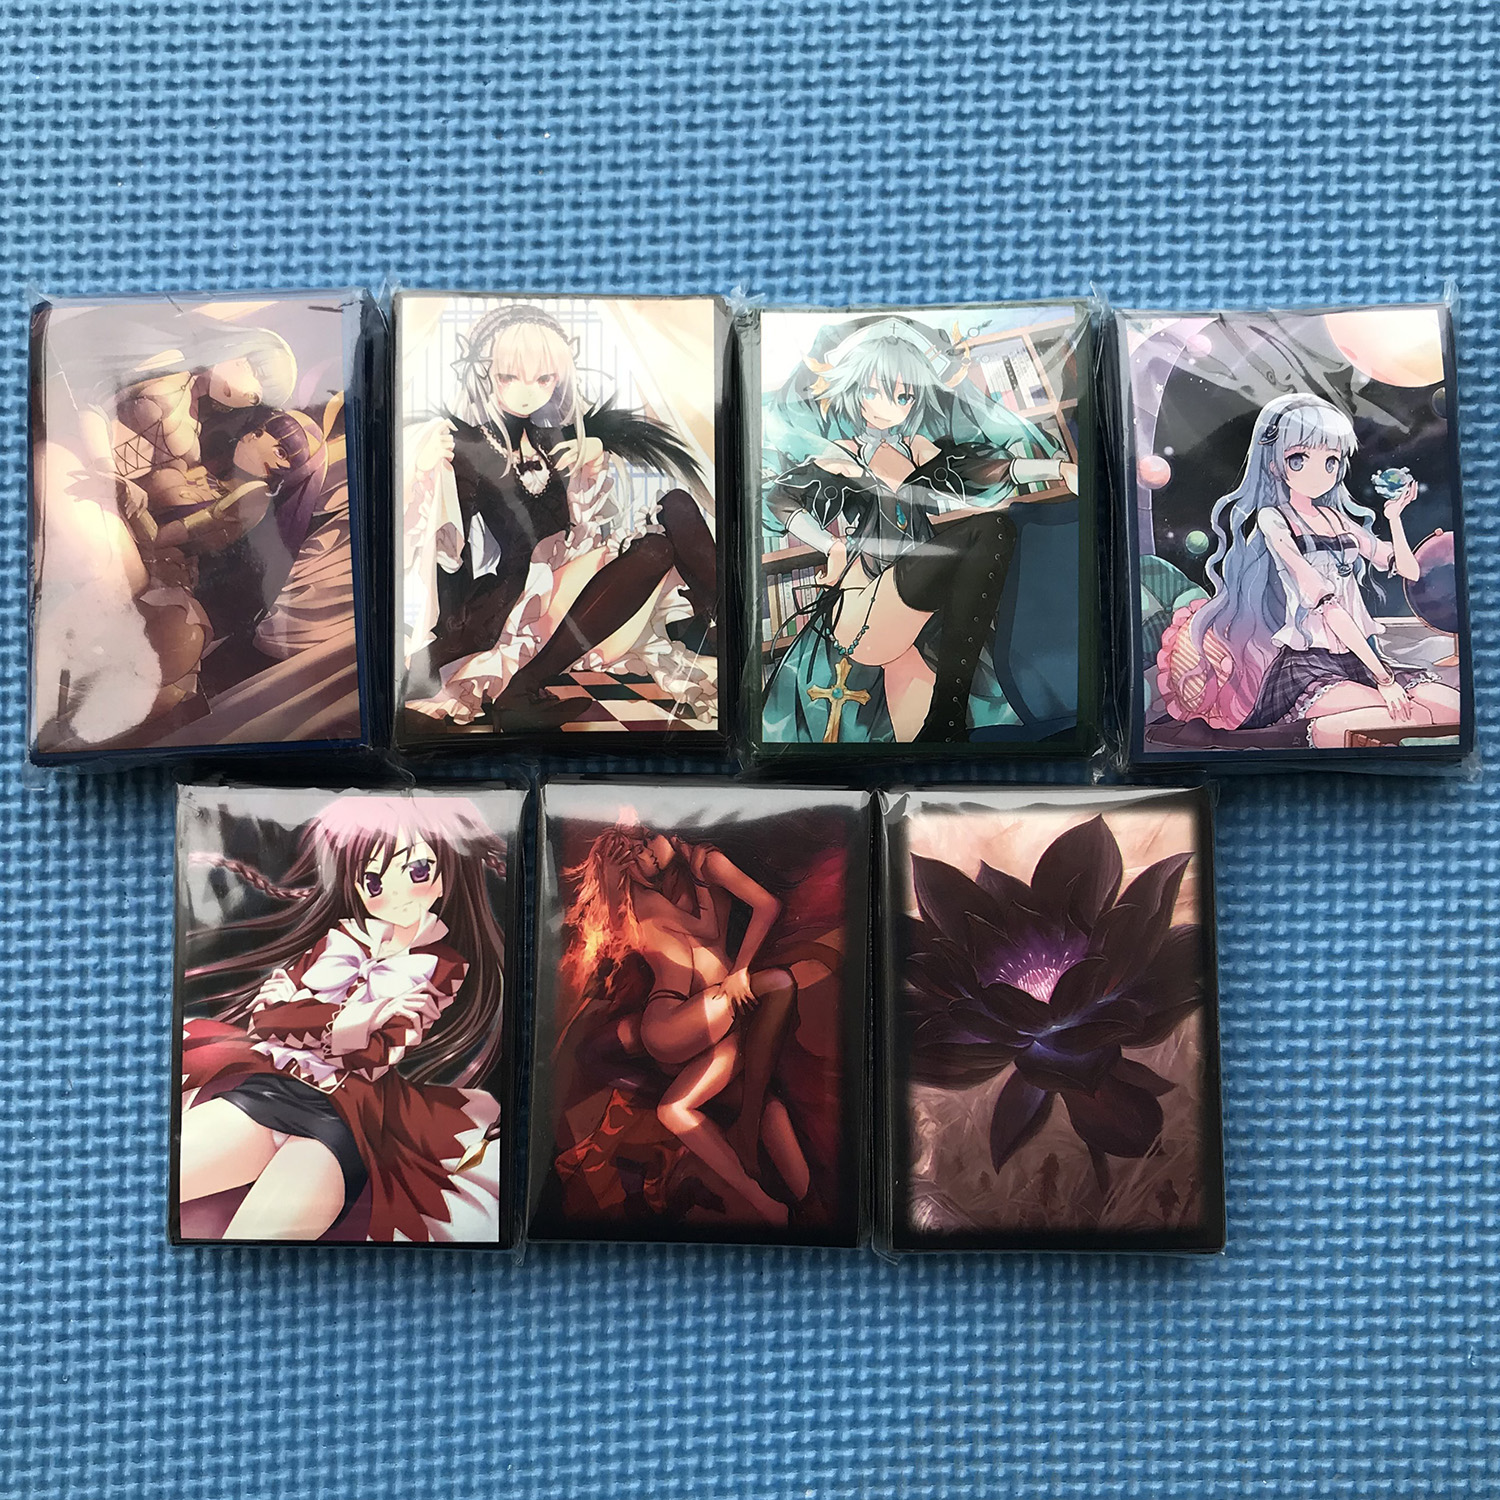 60PCS/BAG TCG Card Sleeves Anime Cards Sleeves Game Characters Protector Cards Shield Graphics Protector Color Sleeves PKM